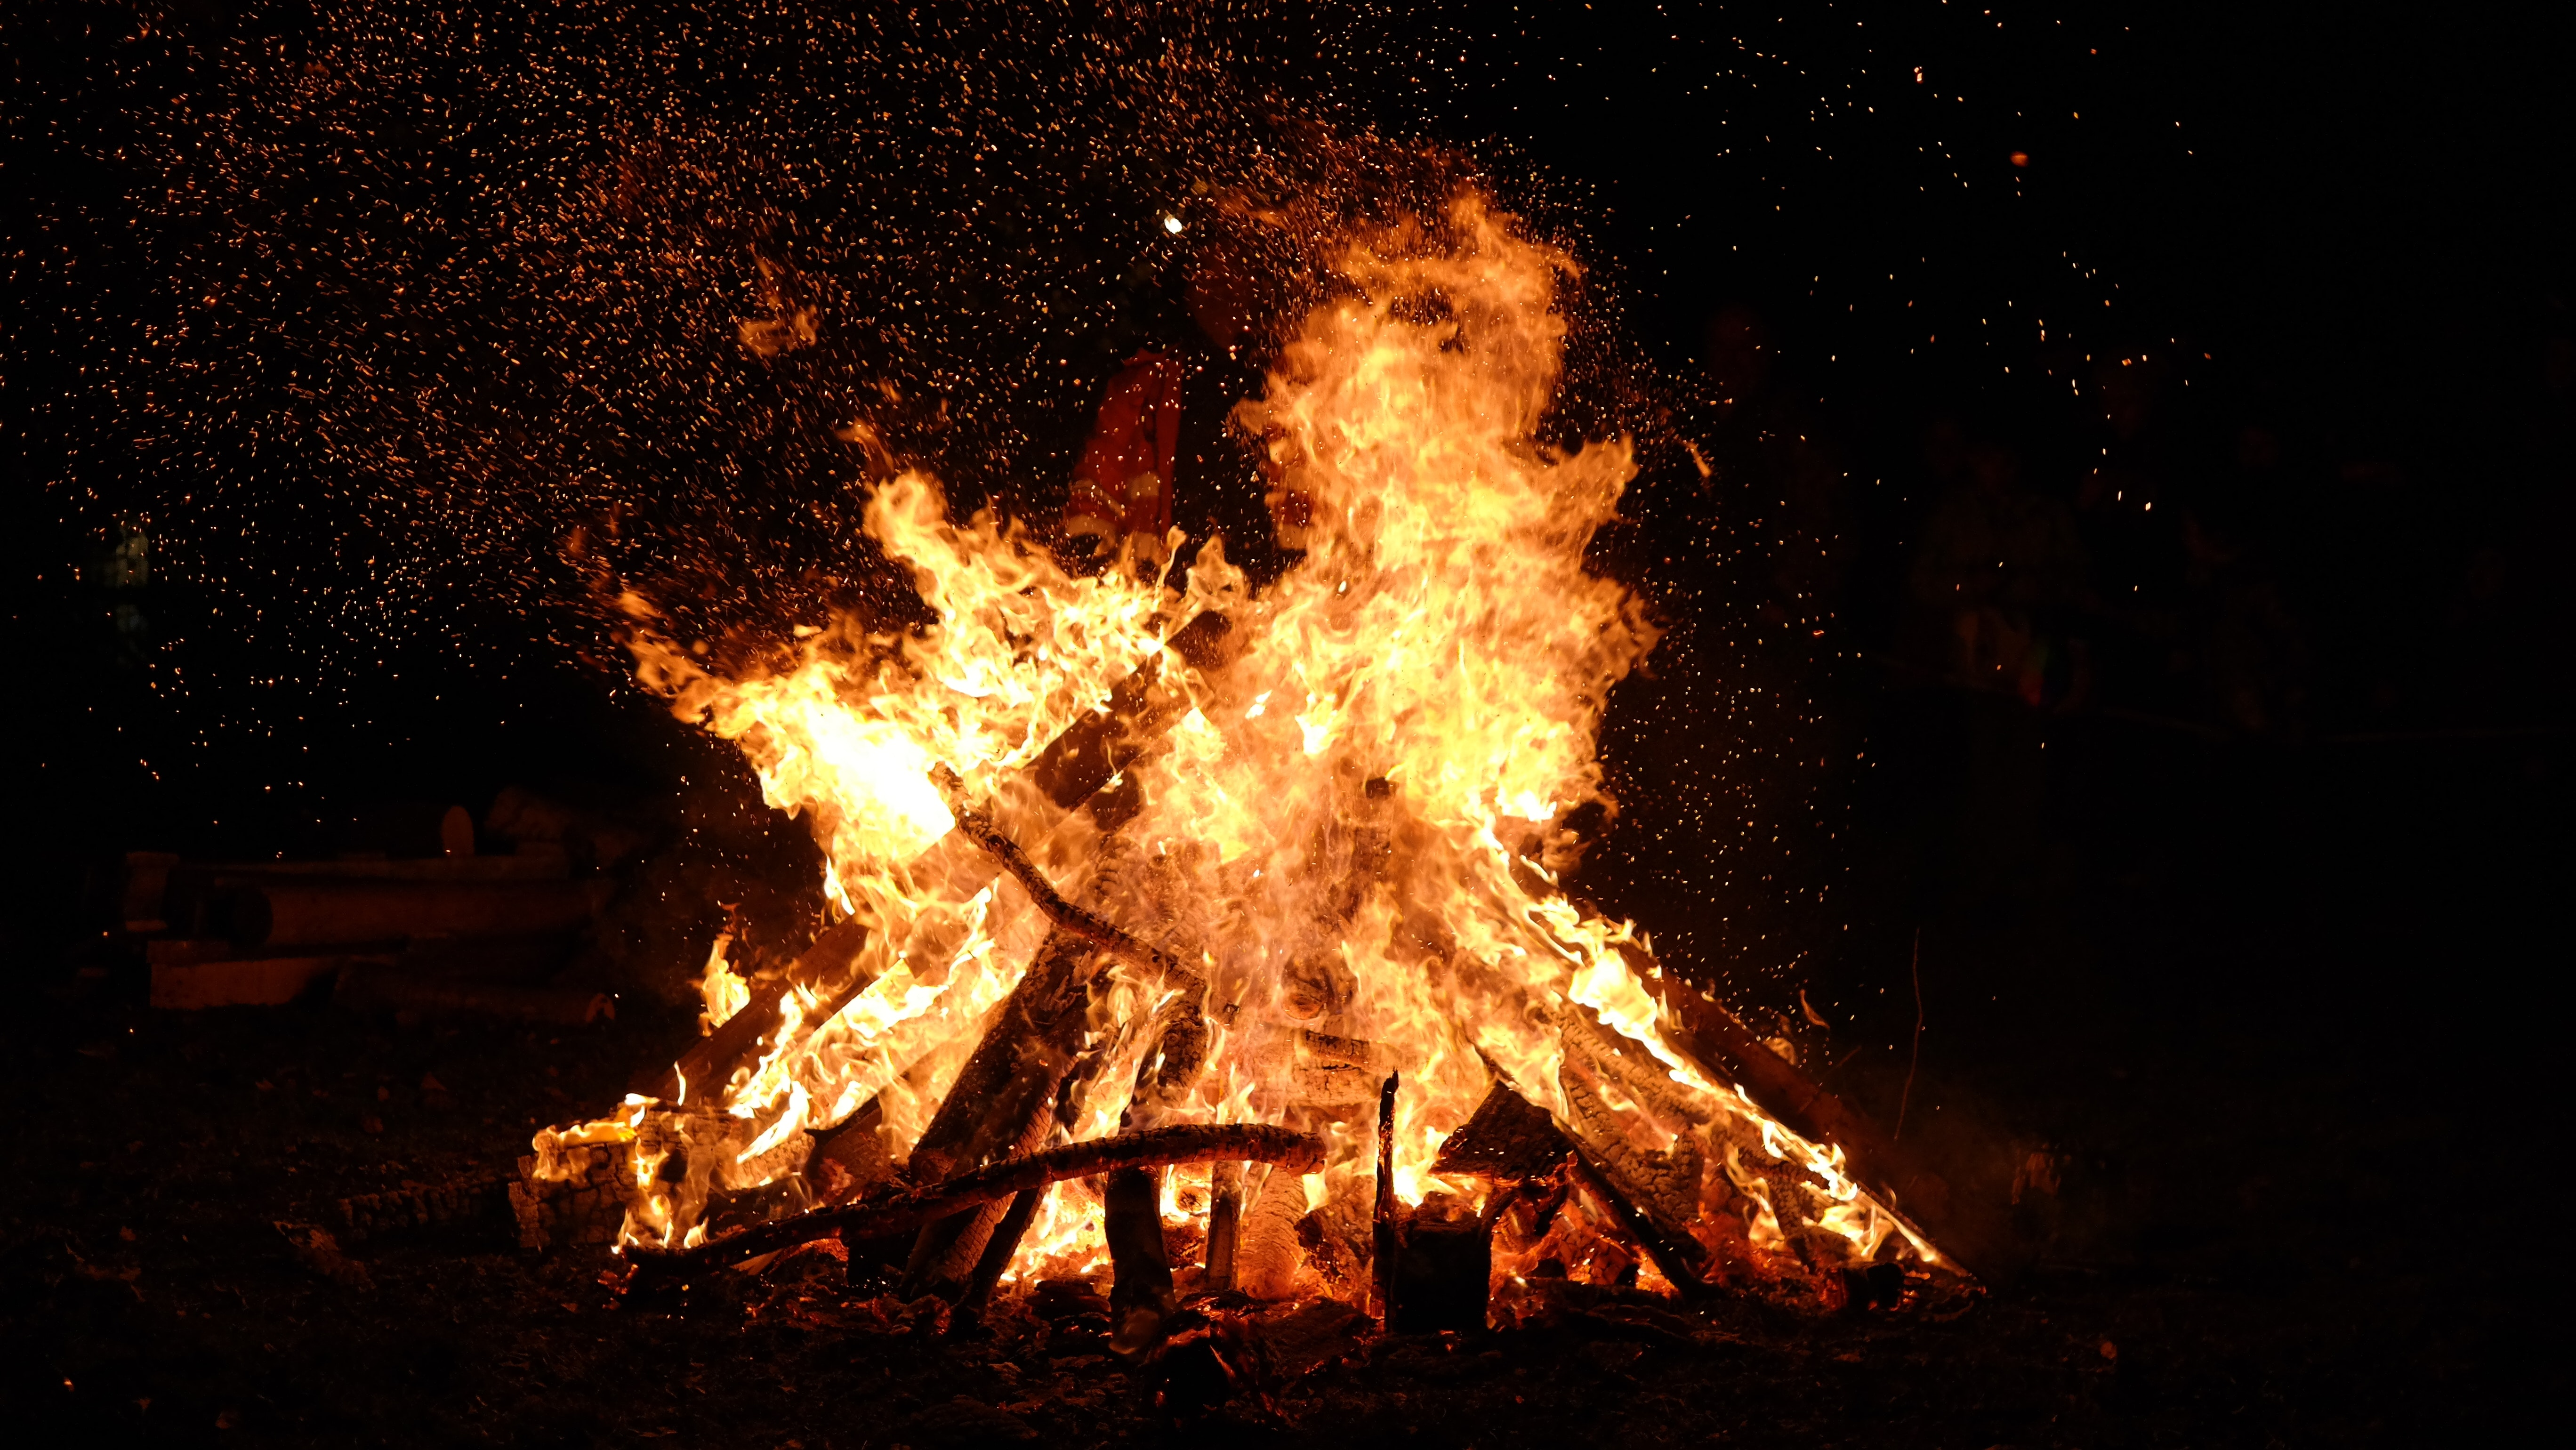 bonfire-burn-burning-776113.jpg